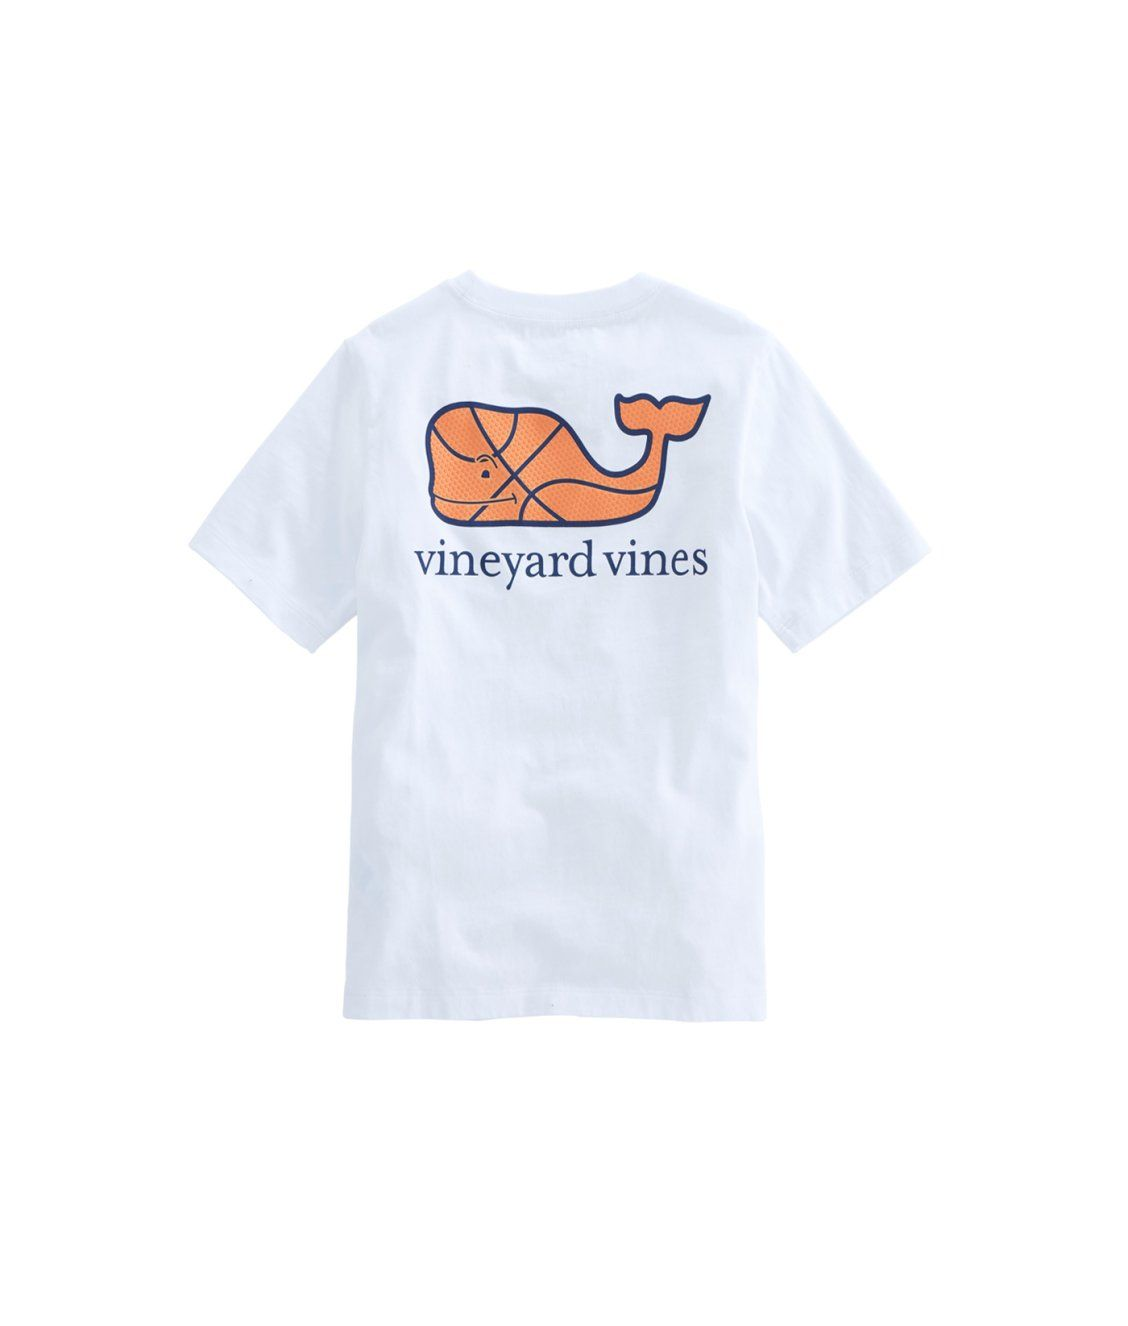 3464f757 Boys Basketball Character Whale Pocket T-Shirt. Find this Pin and more on  new arrivals by vineyard vines.